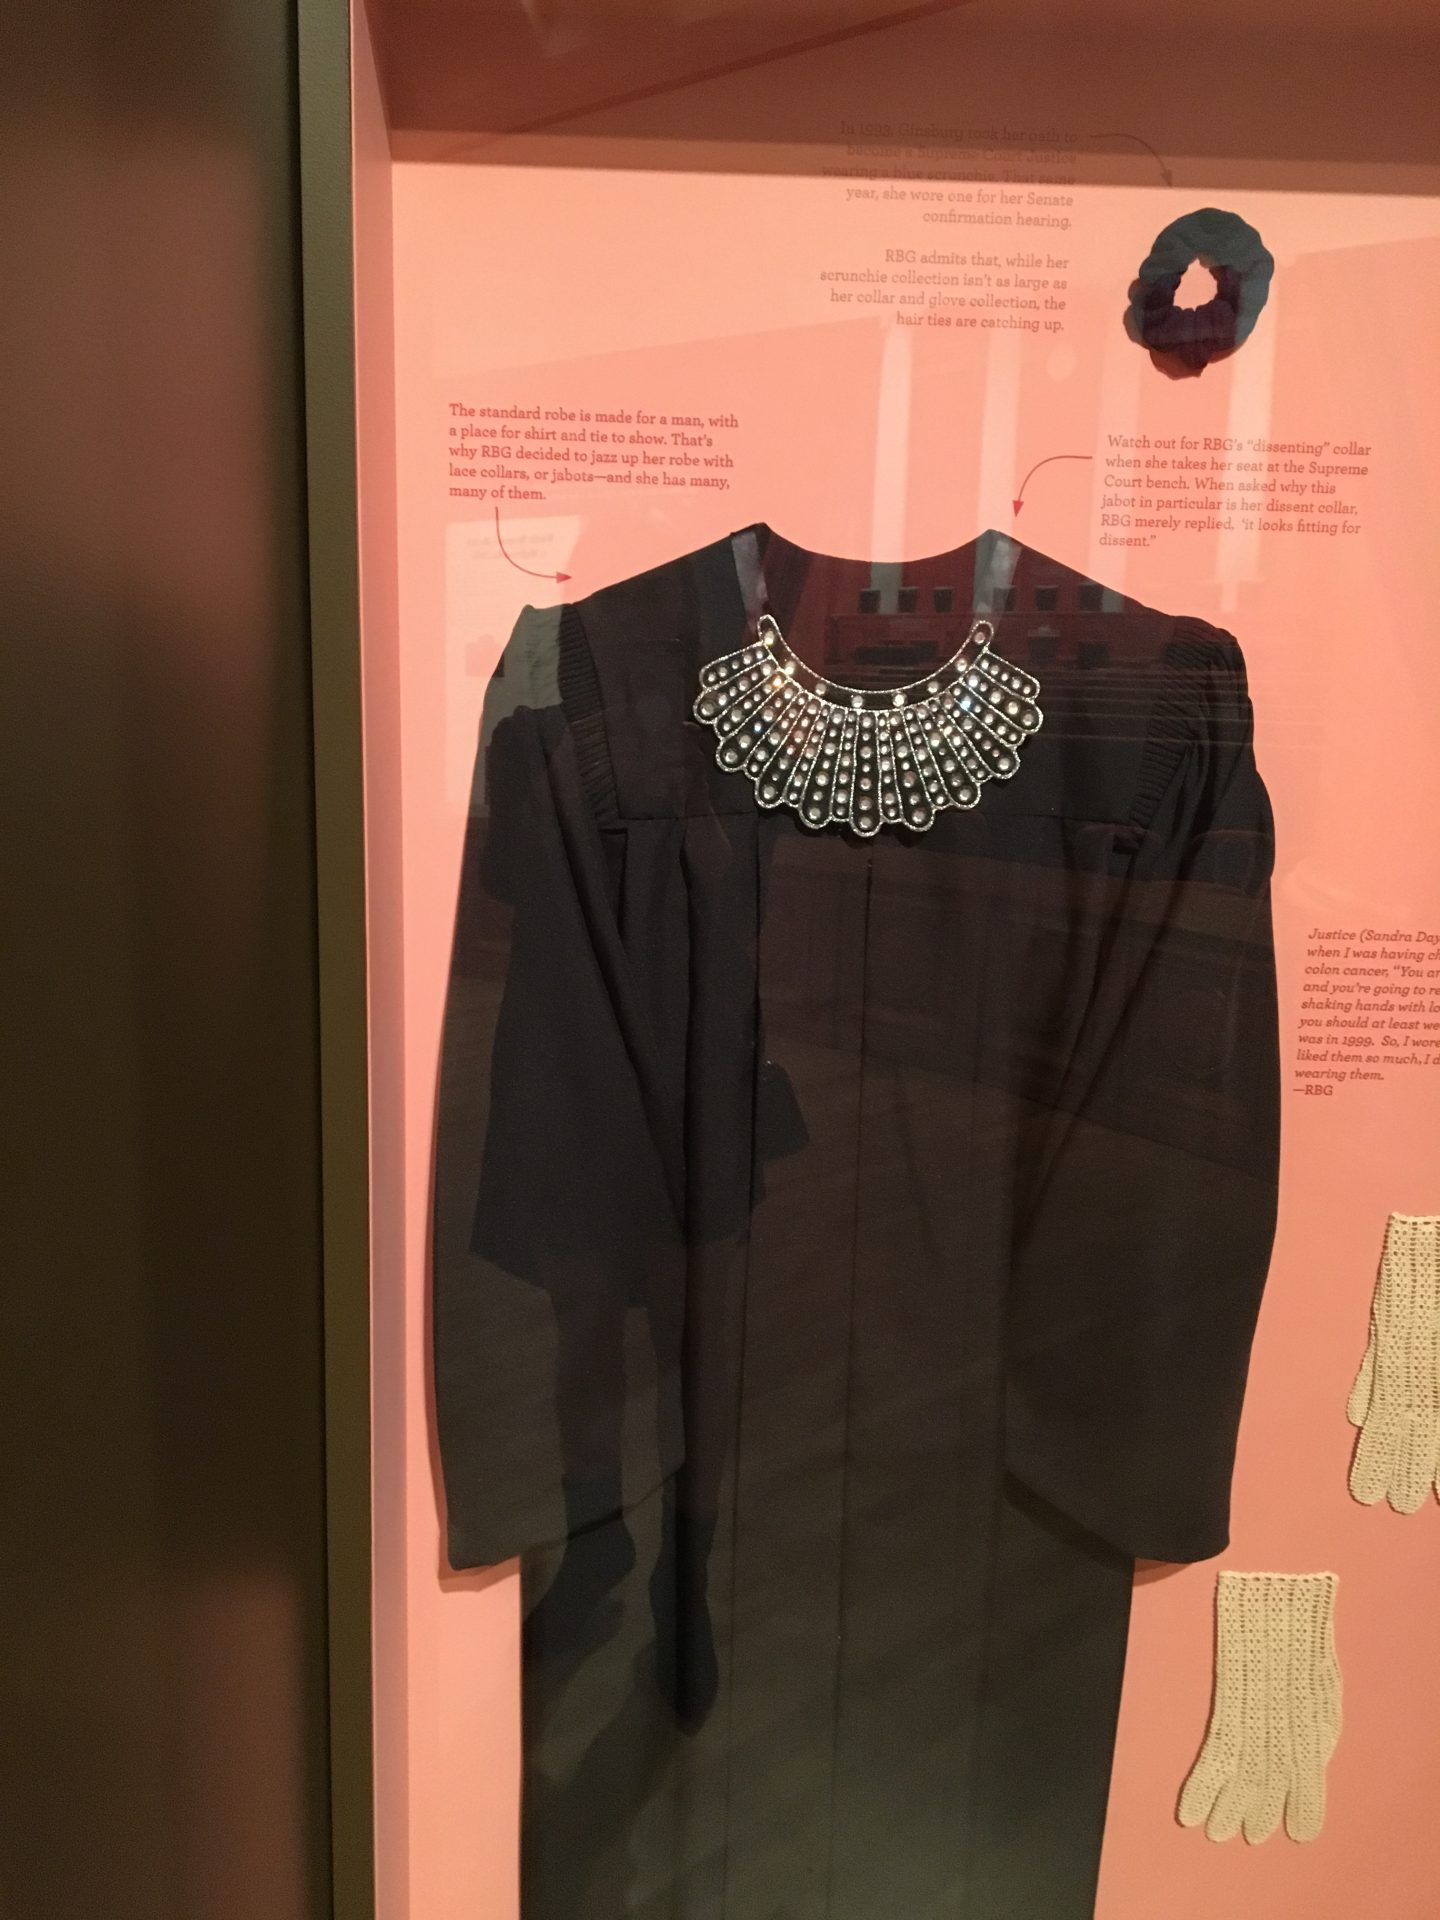 notorious-rbg-exhibit-ruth-bader-ginsburg